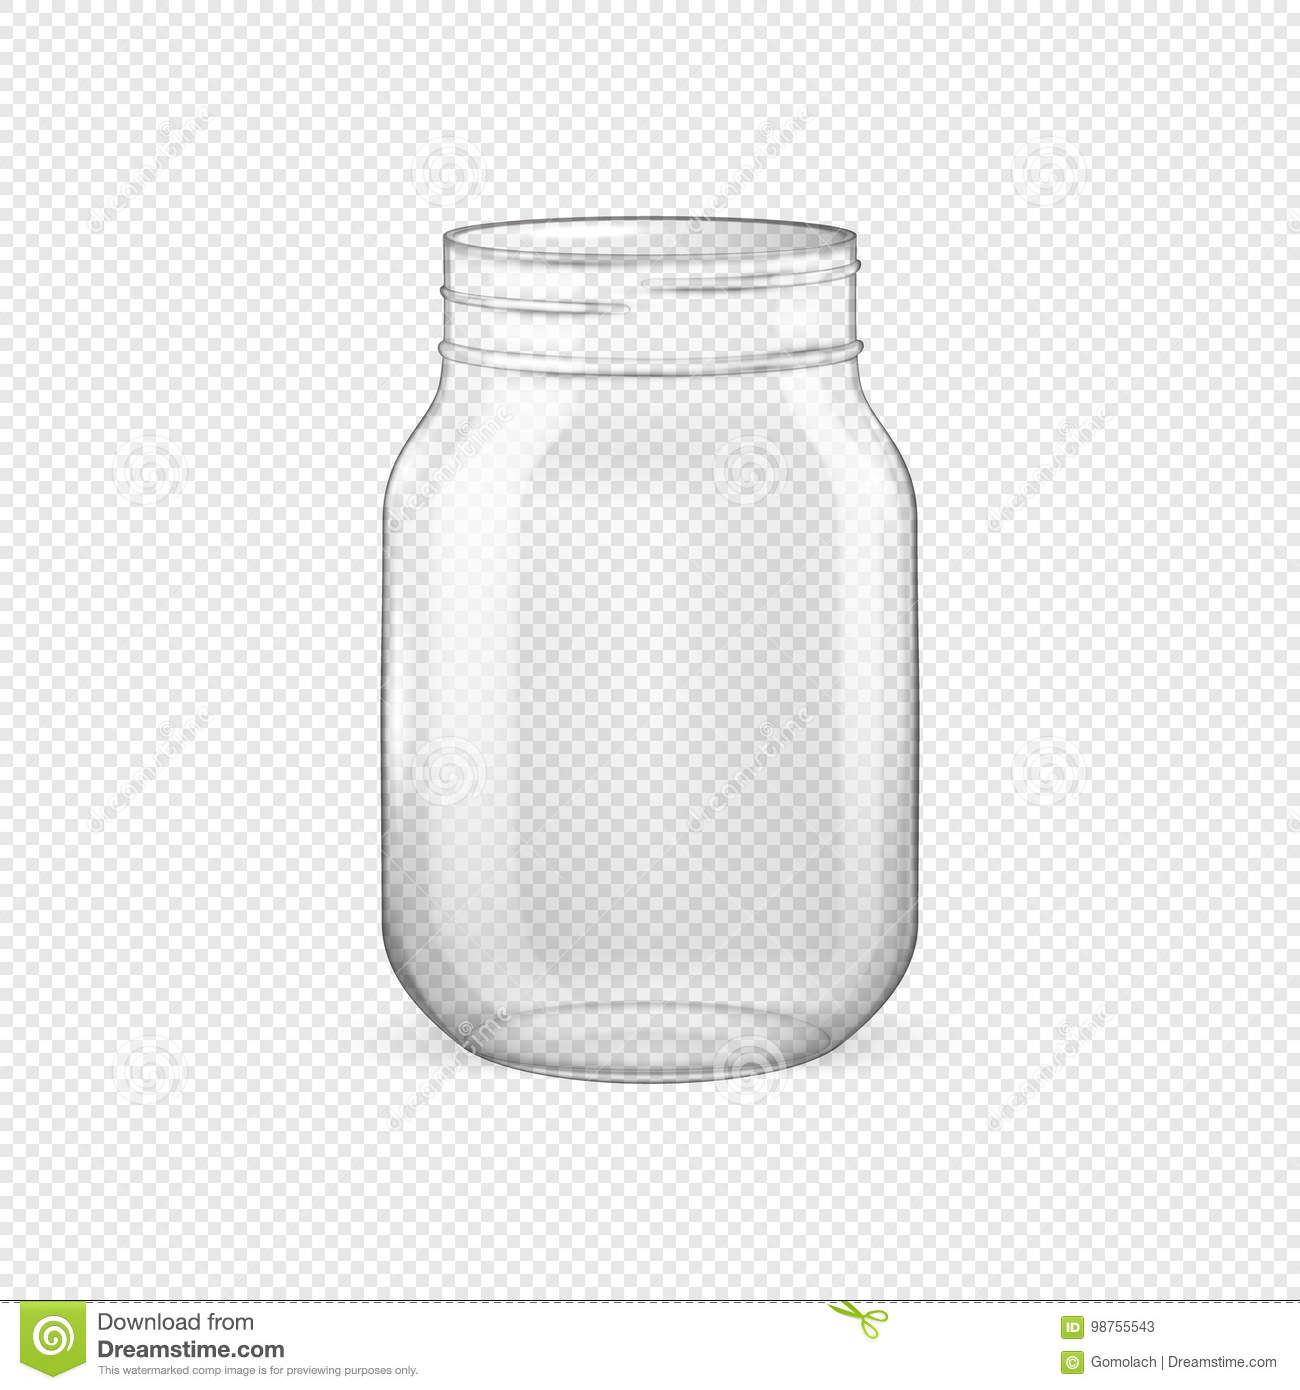 68db213168eb8 Vector Realistic Empty Glass Jar For Canning And Preserving Without ...